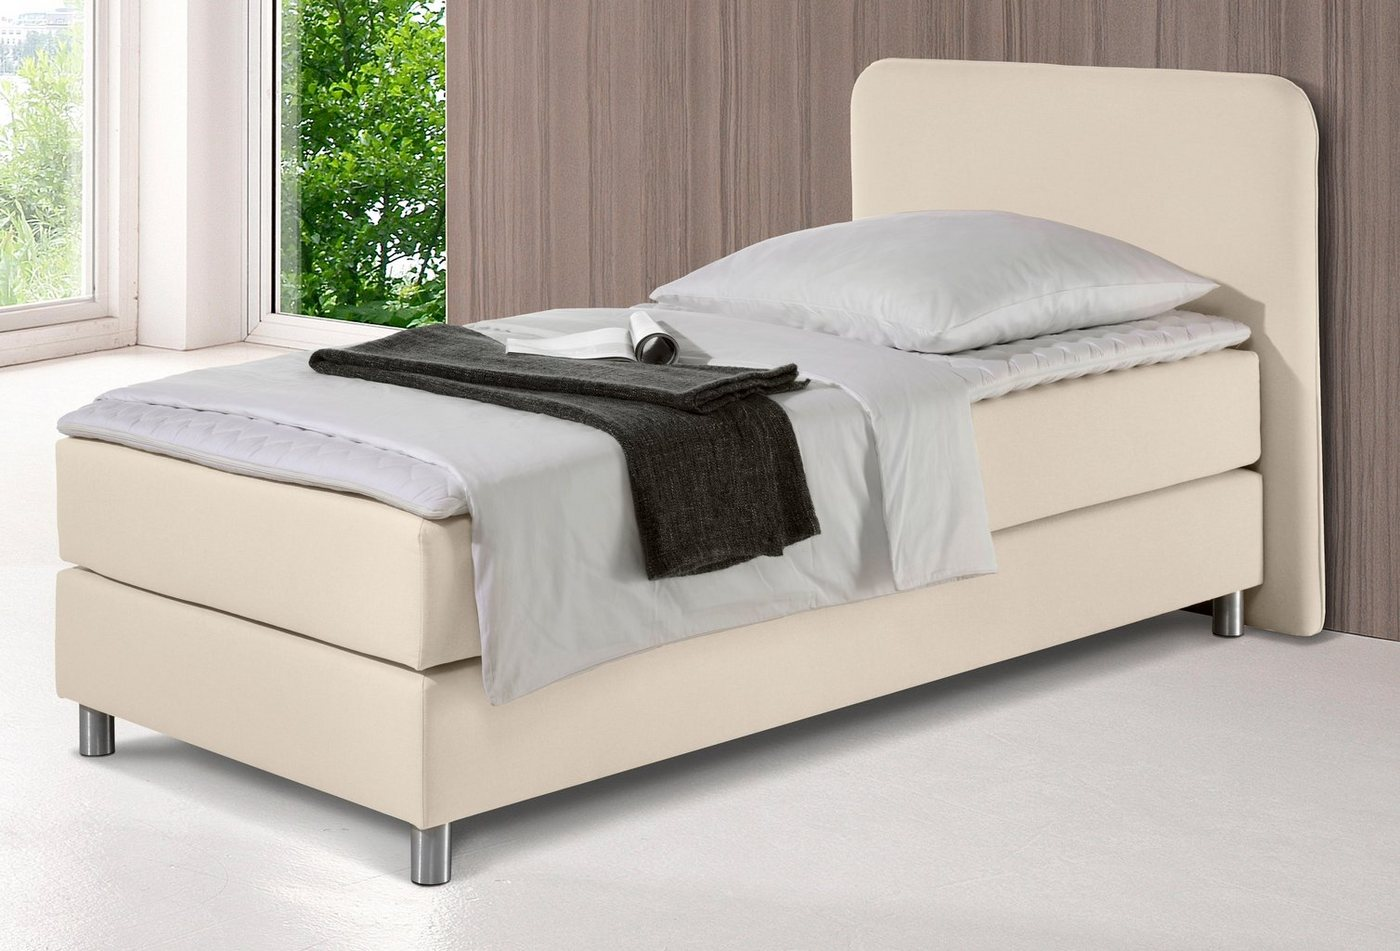 INOSIGN Boxspringbett »Flair«, natur, 100/200 cm, beige